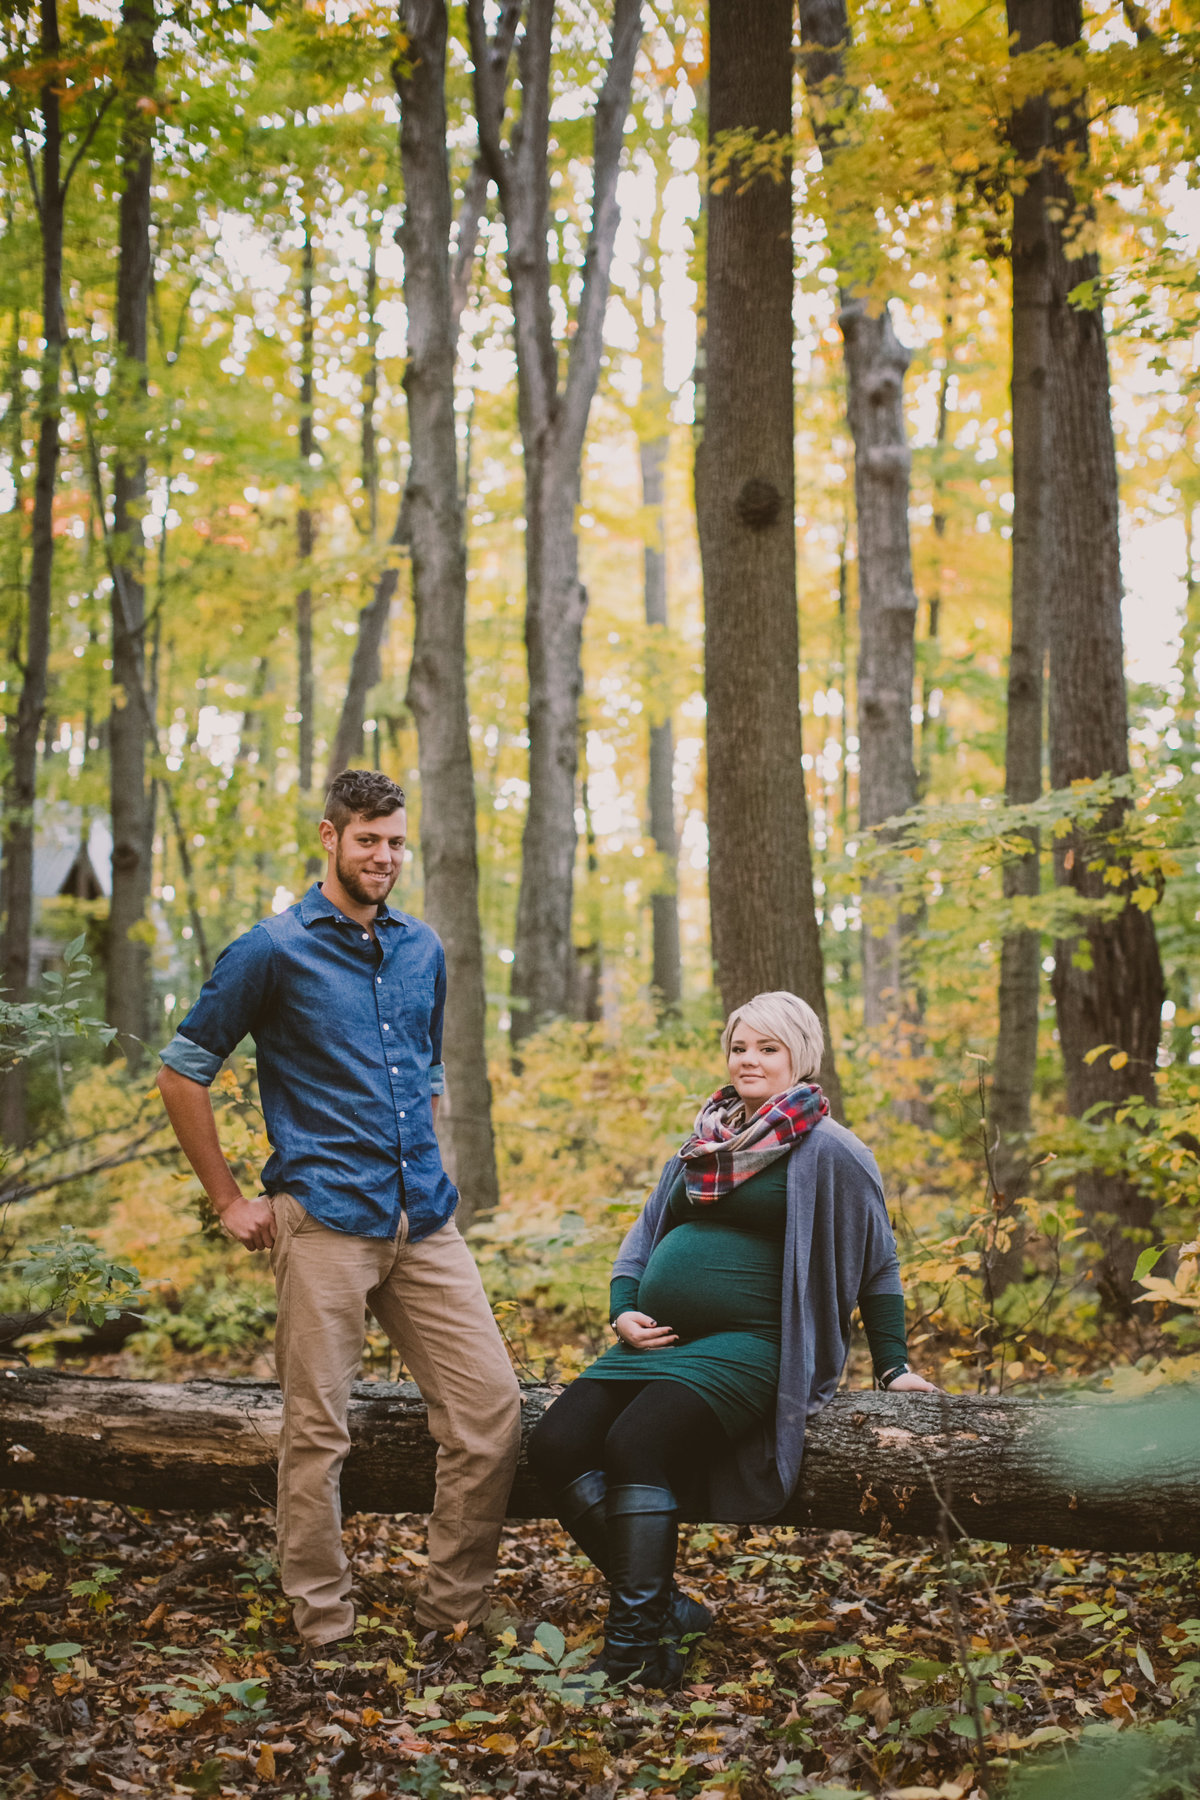 Meghan+Russ-Maternity-Contagious-design-photo-HR-0019